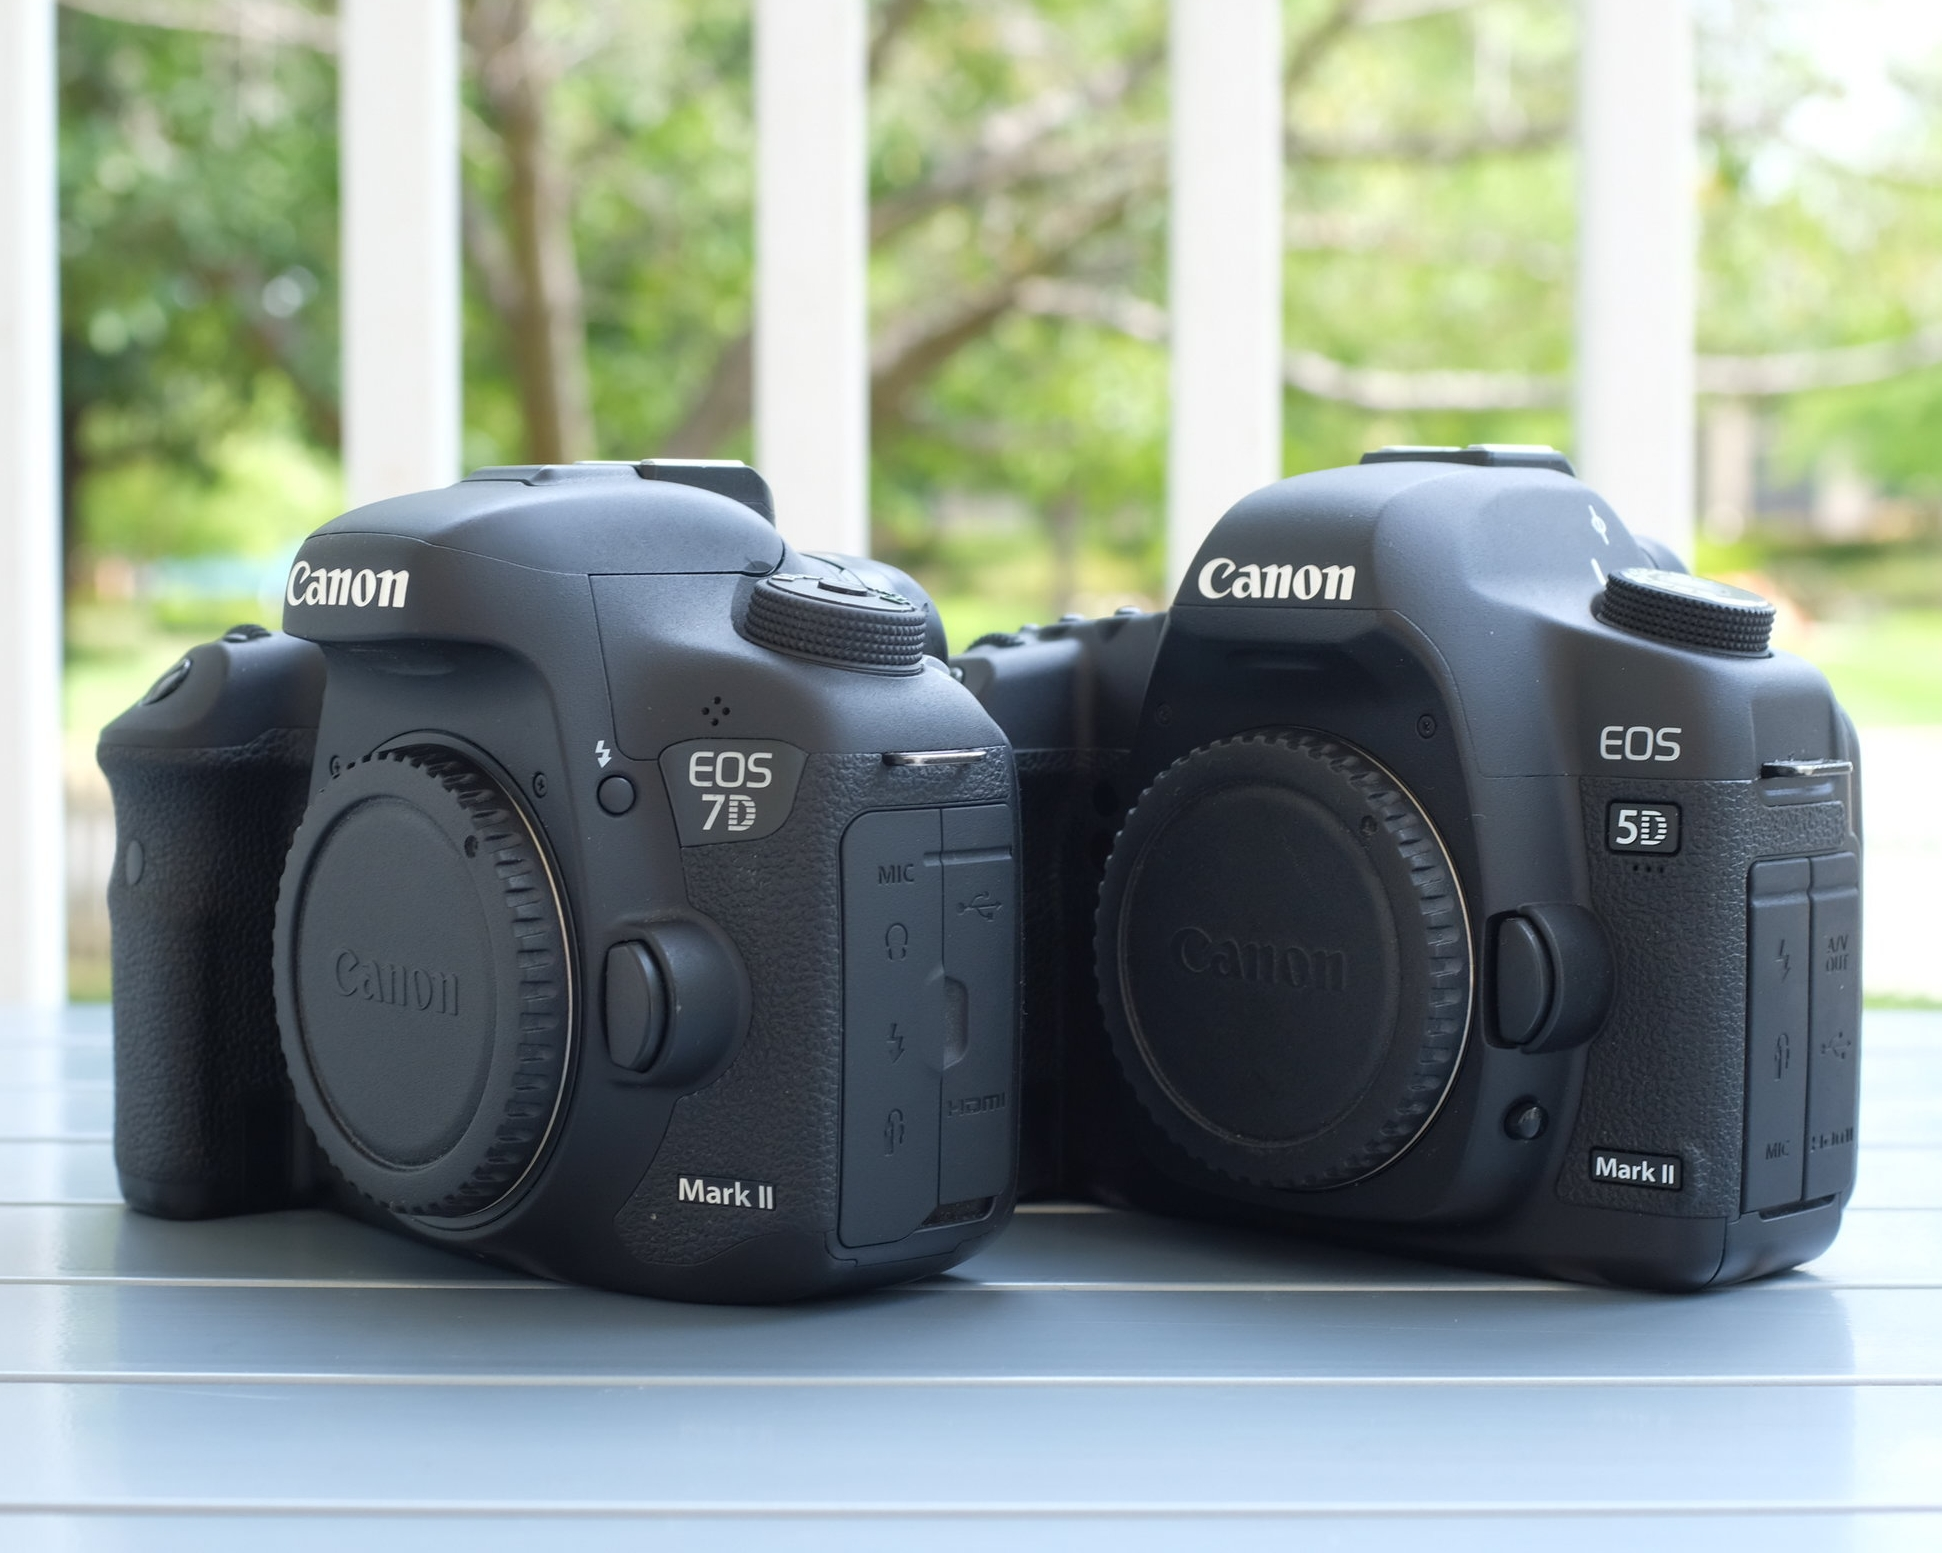 My current DSLR workhorses, the more modern Canon 7D Mark II high-performance APS-C body on the left, and my older Canon 5D Mark II full-frame body that I use for portraiture and more artistic type photos on the right.